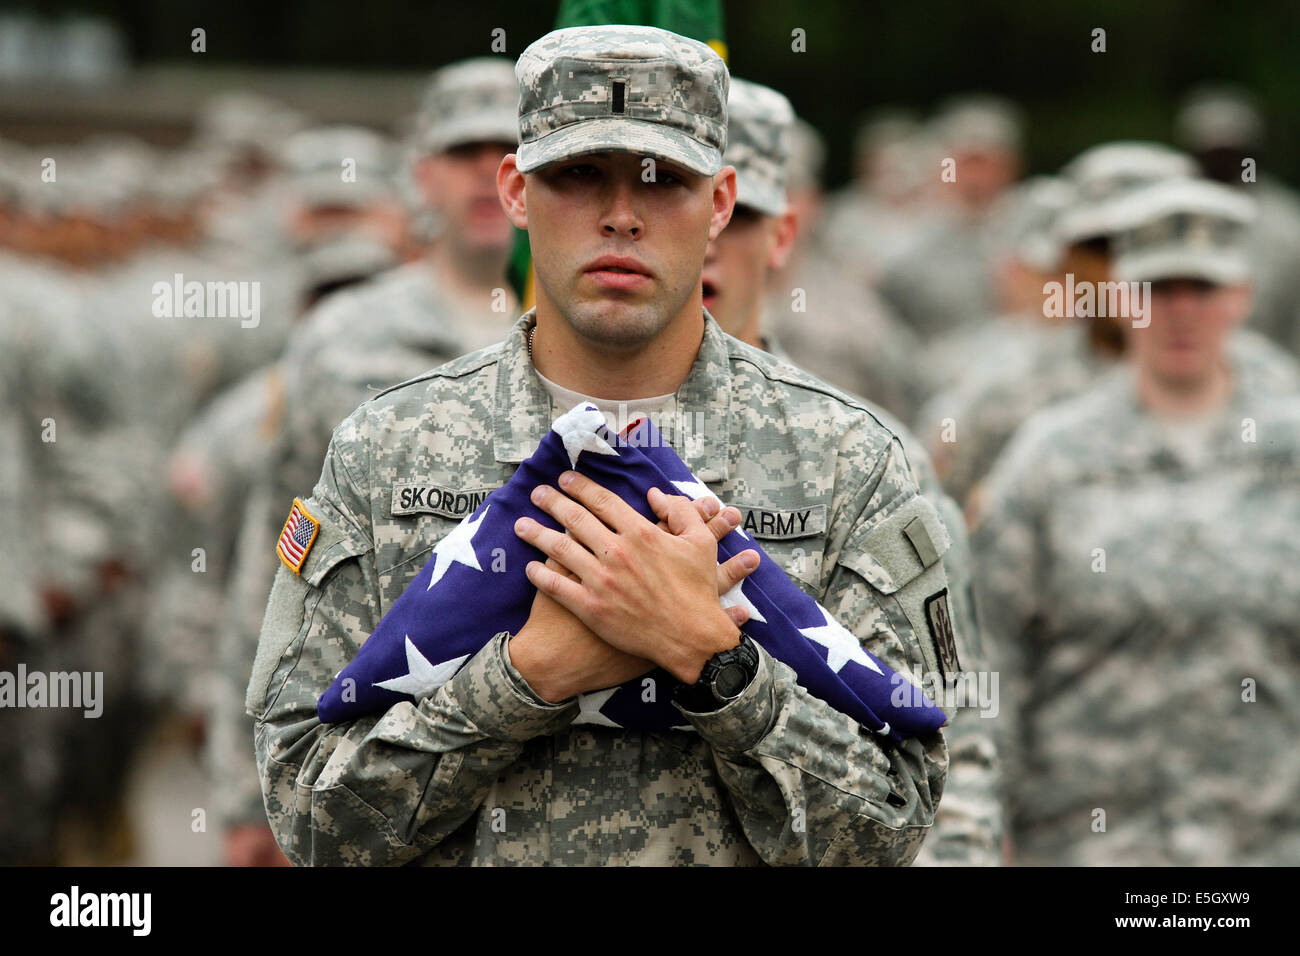 A U.S. Soldier assigned to the Army Reserve 423rd Military Police (MP) Company holds an American flag, accompanied - Stock Image